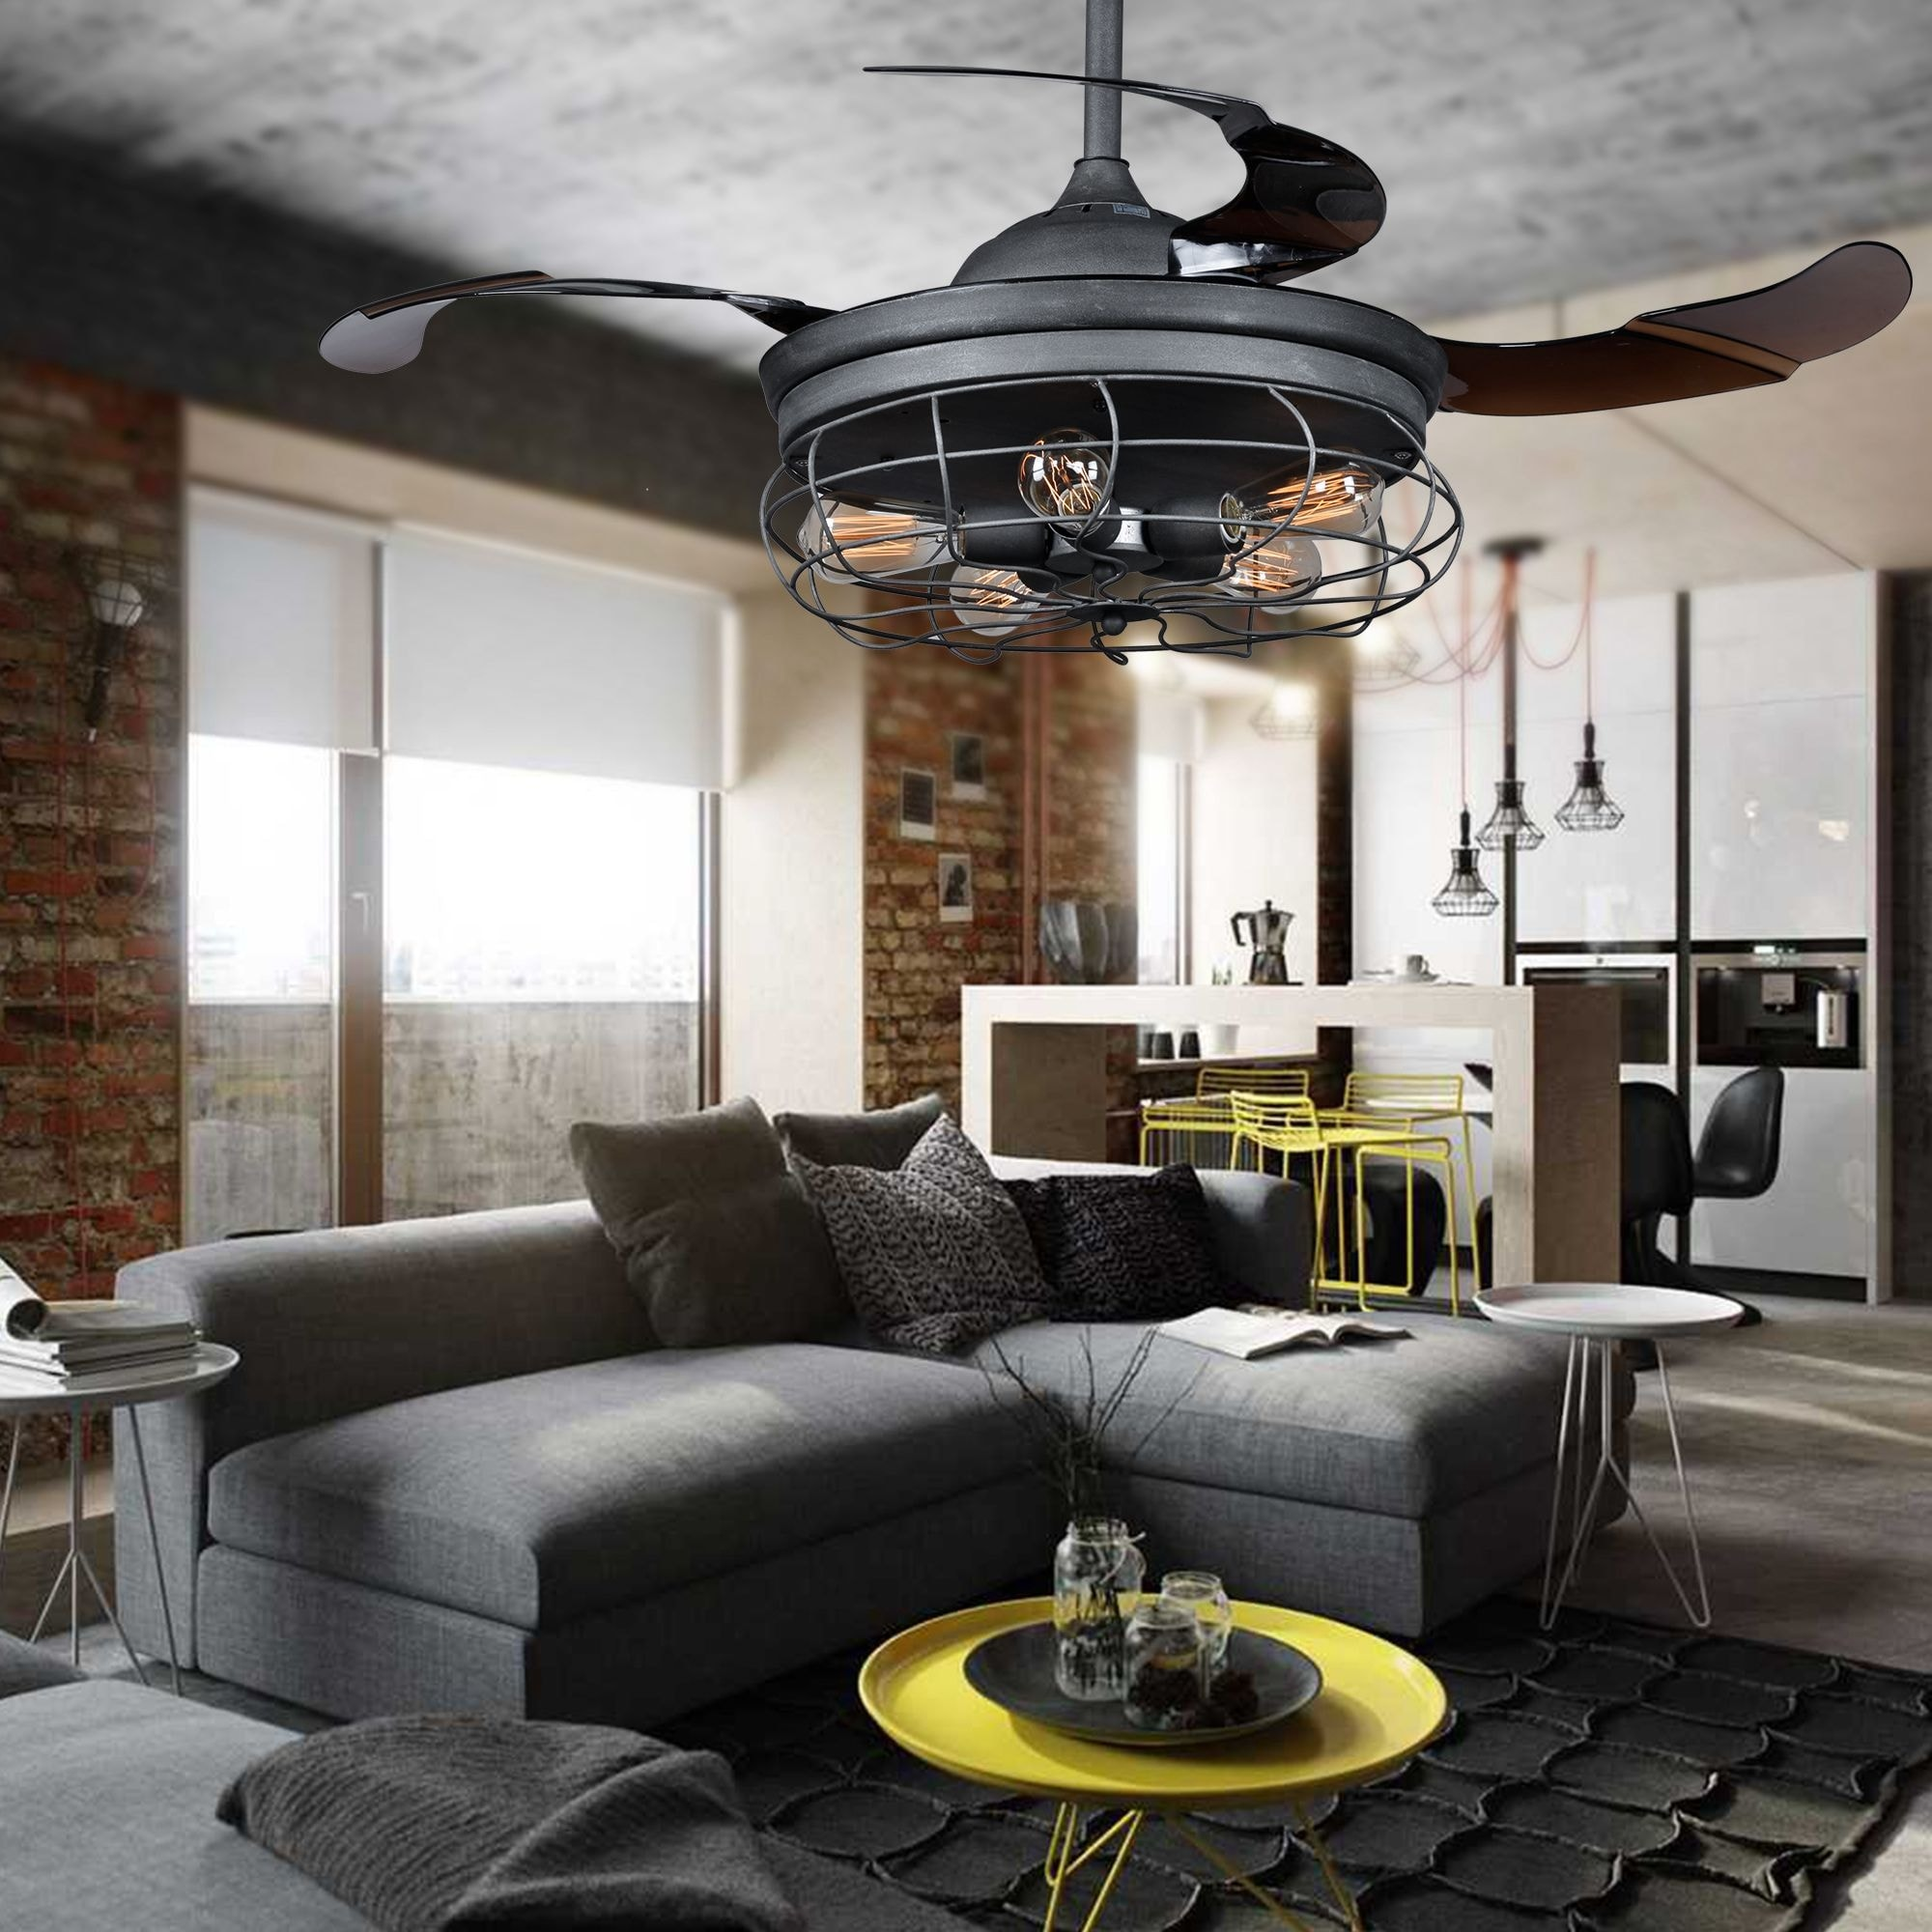 very info color ideas luxury fan kitchen of center living rock need in fans whisper for thejquery livings fresh tall wall s with room